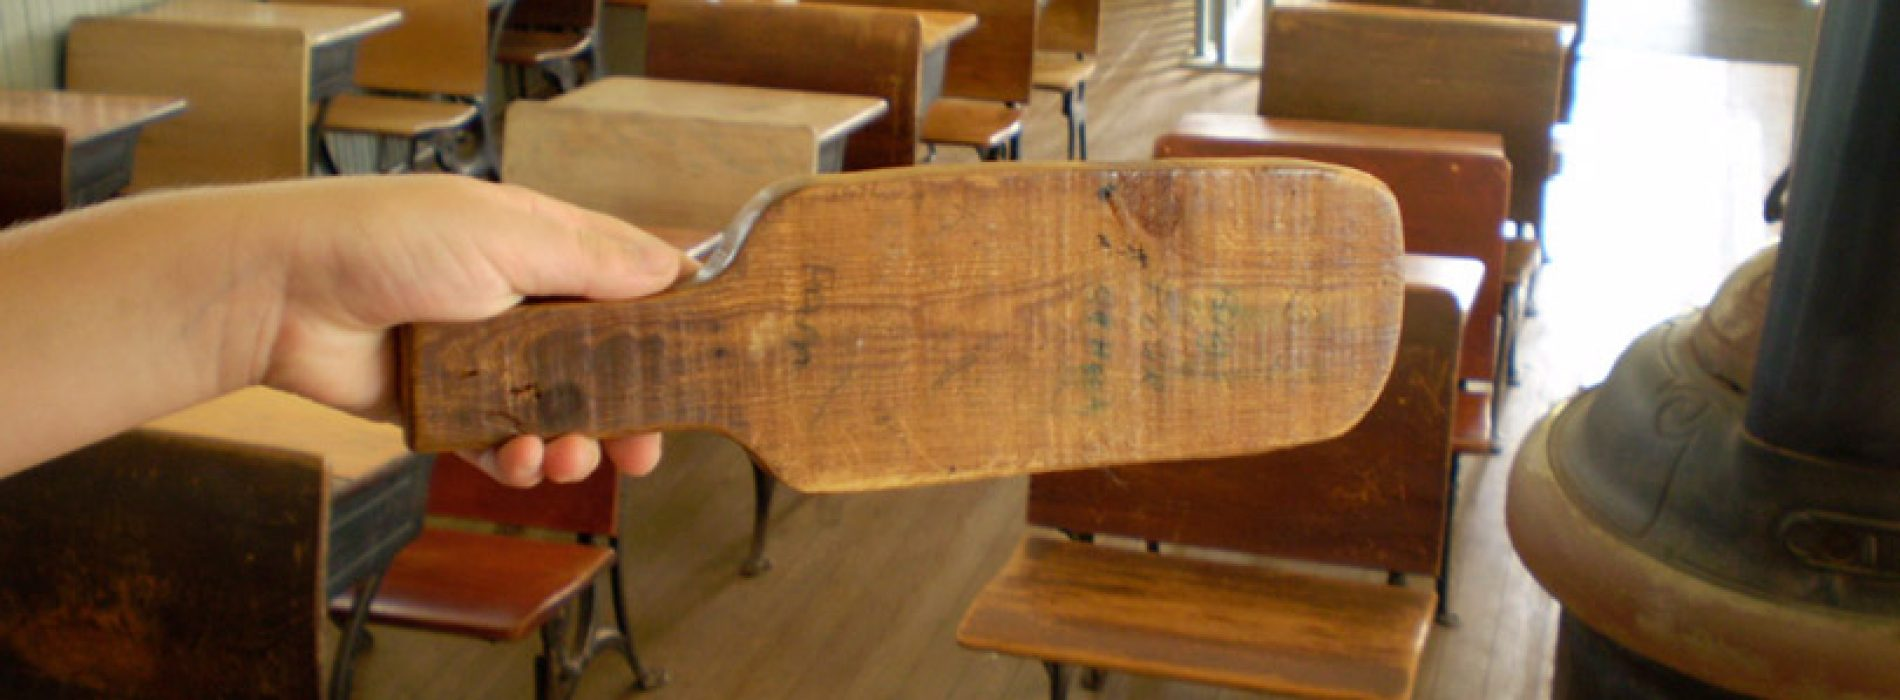 Bill would finally, fully ban corporal punishment in Maine schools